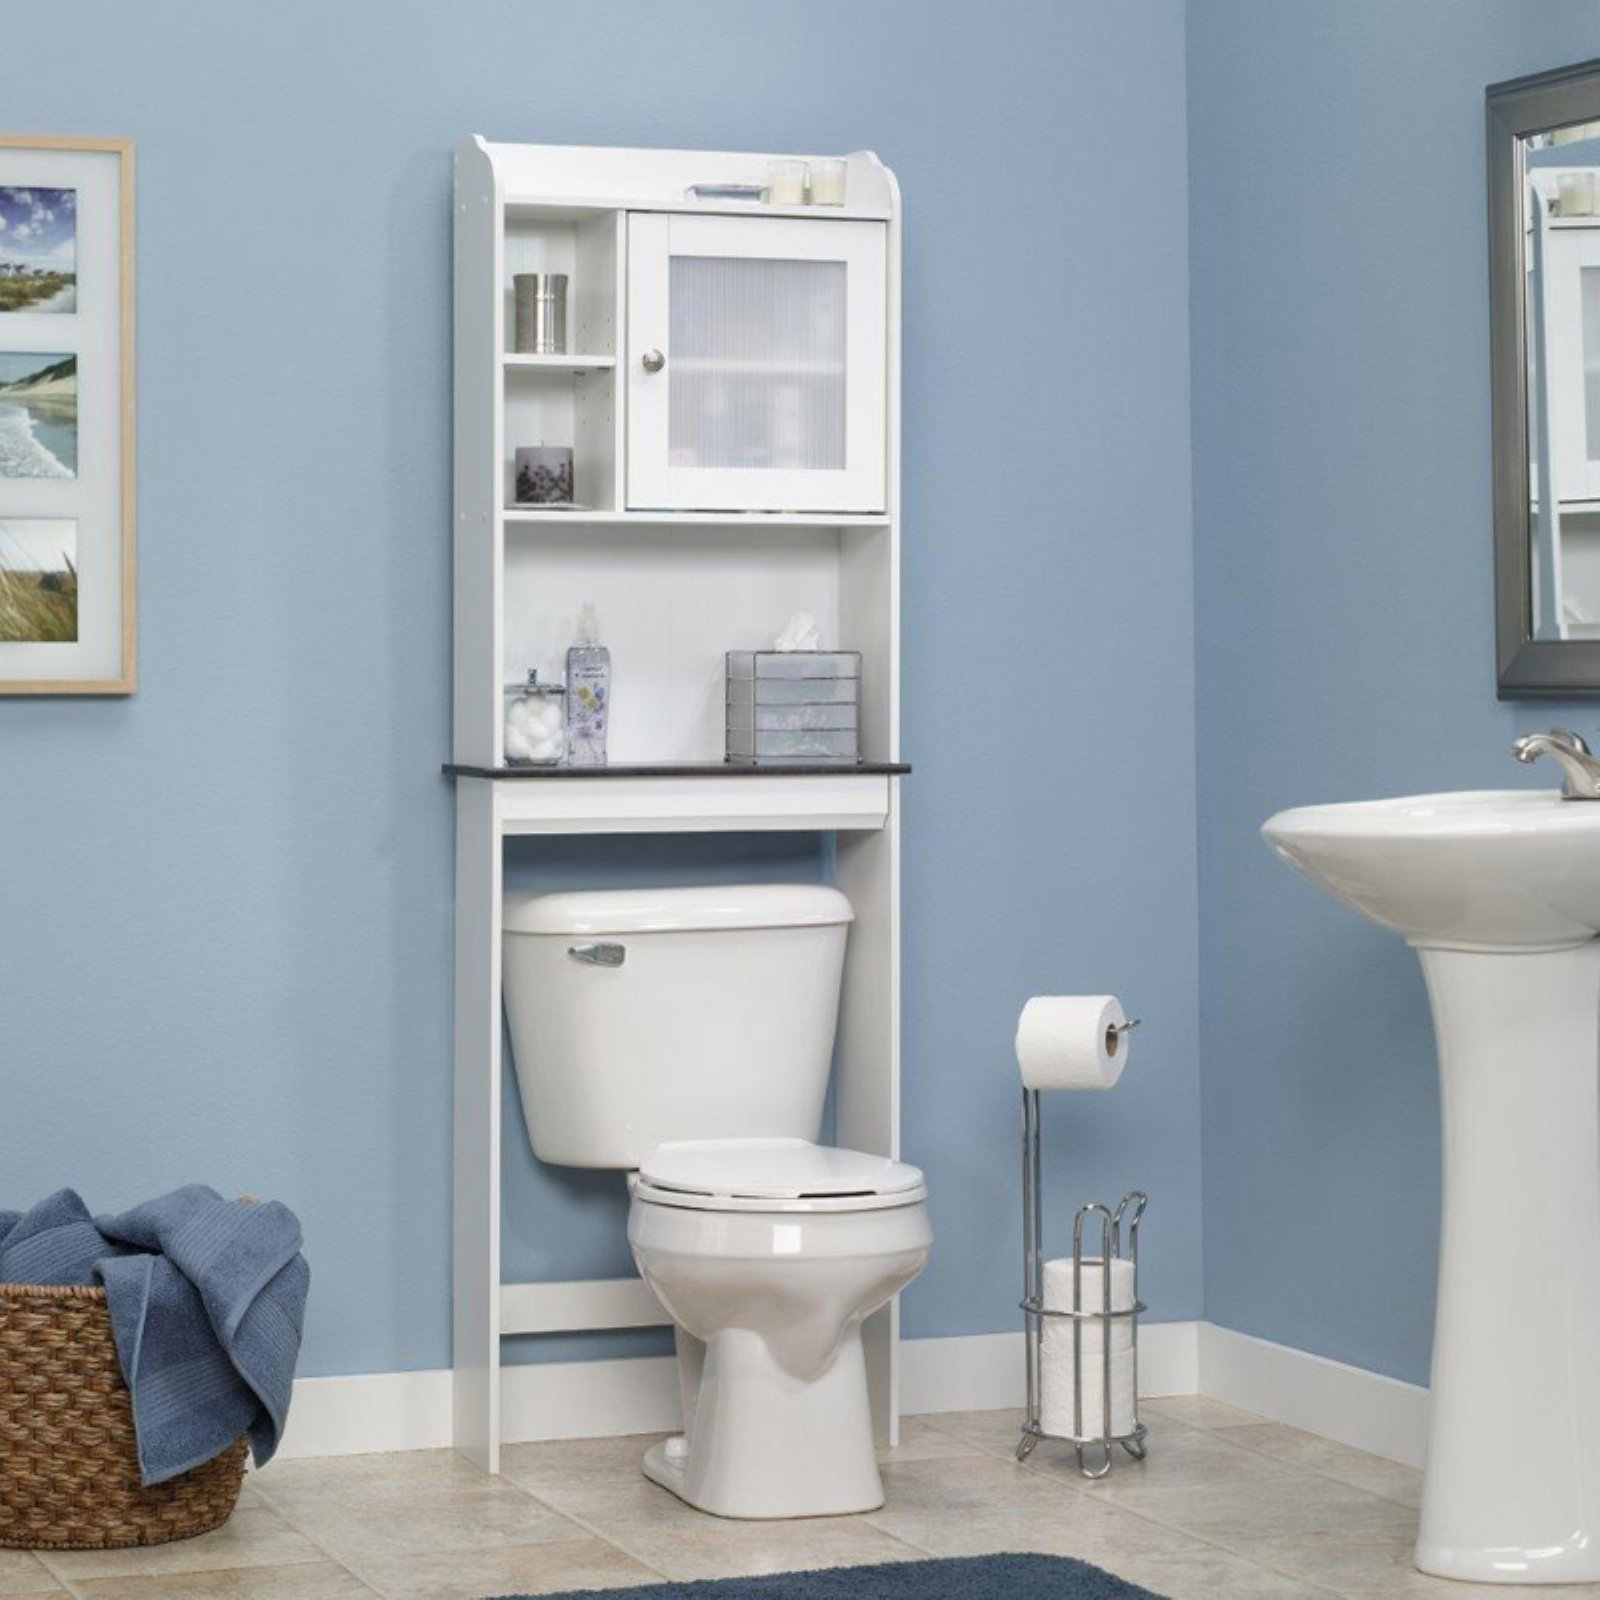 Genial Sauder Bath Caraway Collection Space Saver